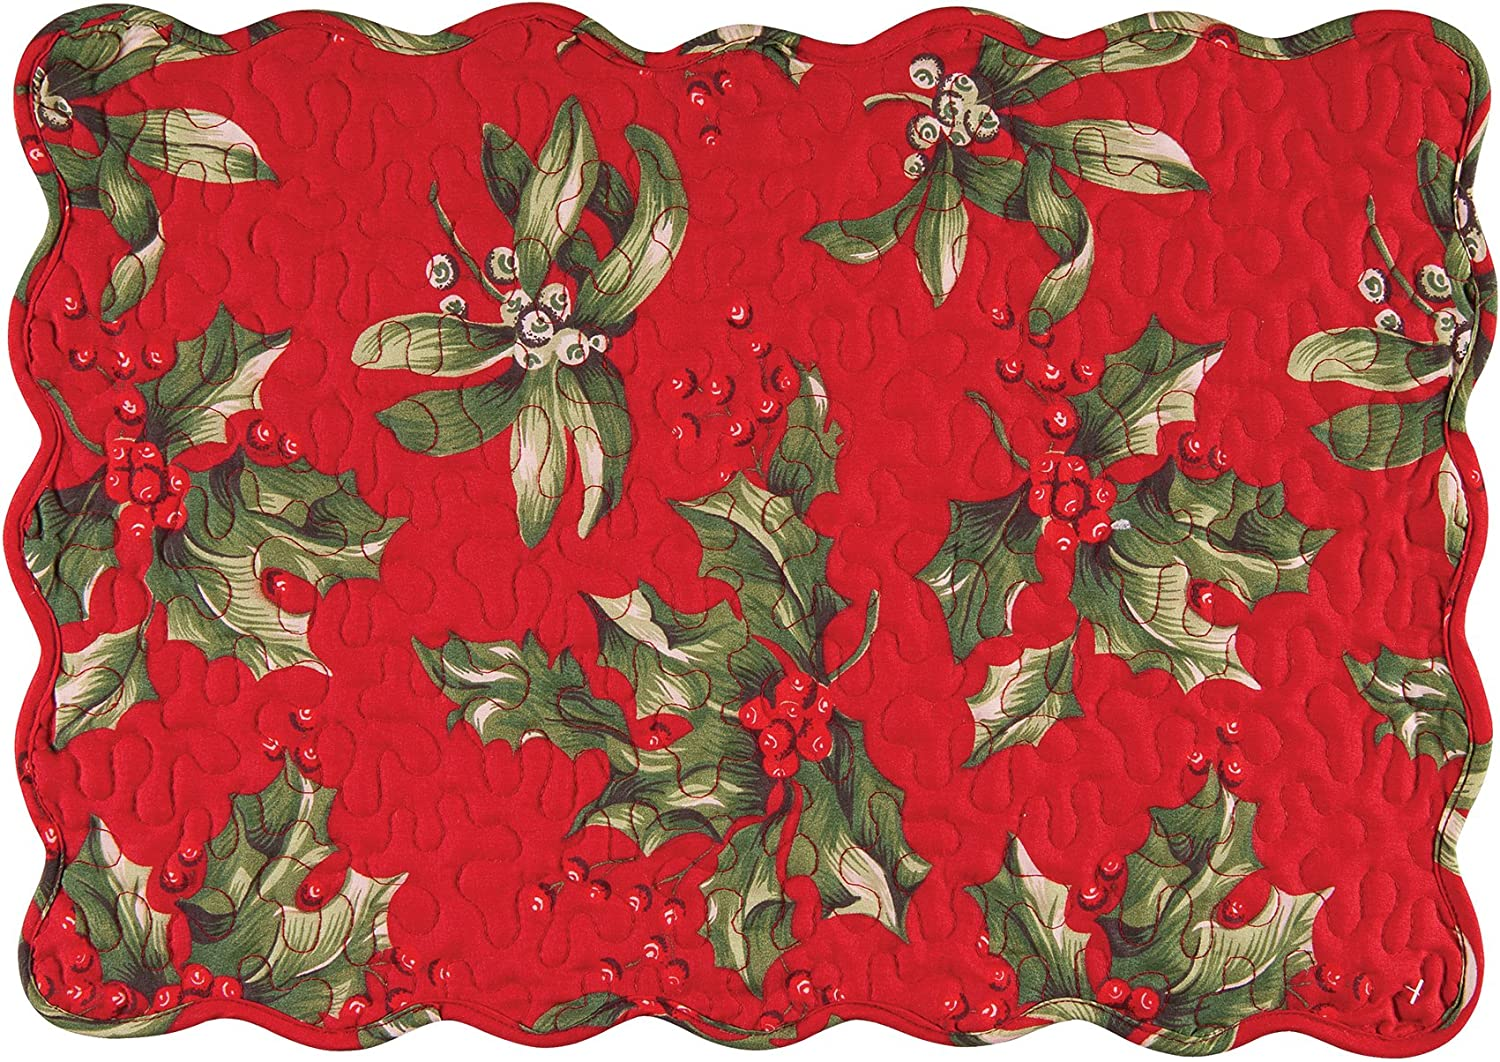 C&F Home Holly Bouquet Holiday Christmas Floral Botanical Red Green 13 x 19 Quilted Reversible Placemat Set of 6 Rectangular Placemat Set of 6 Red